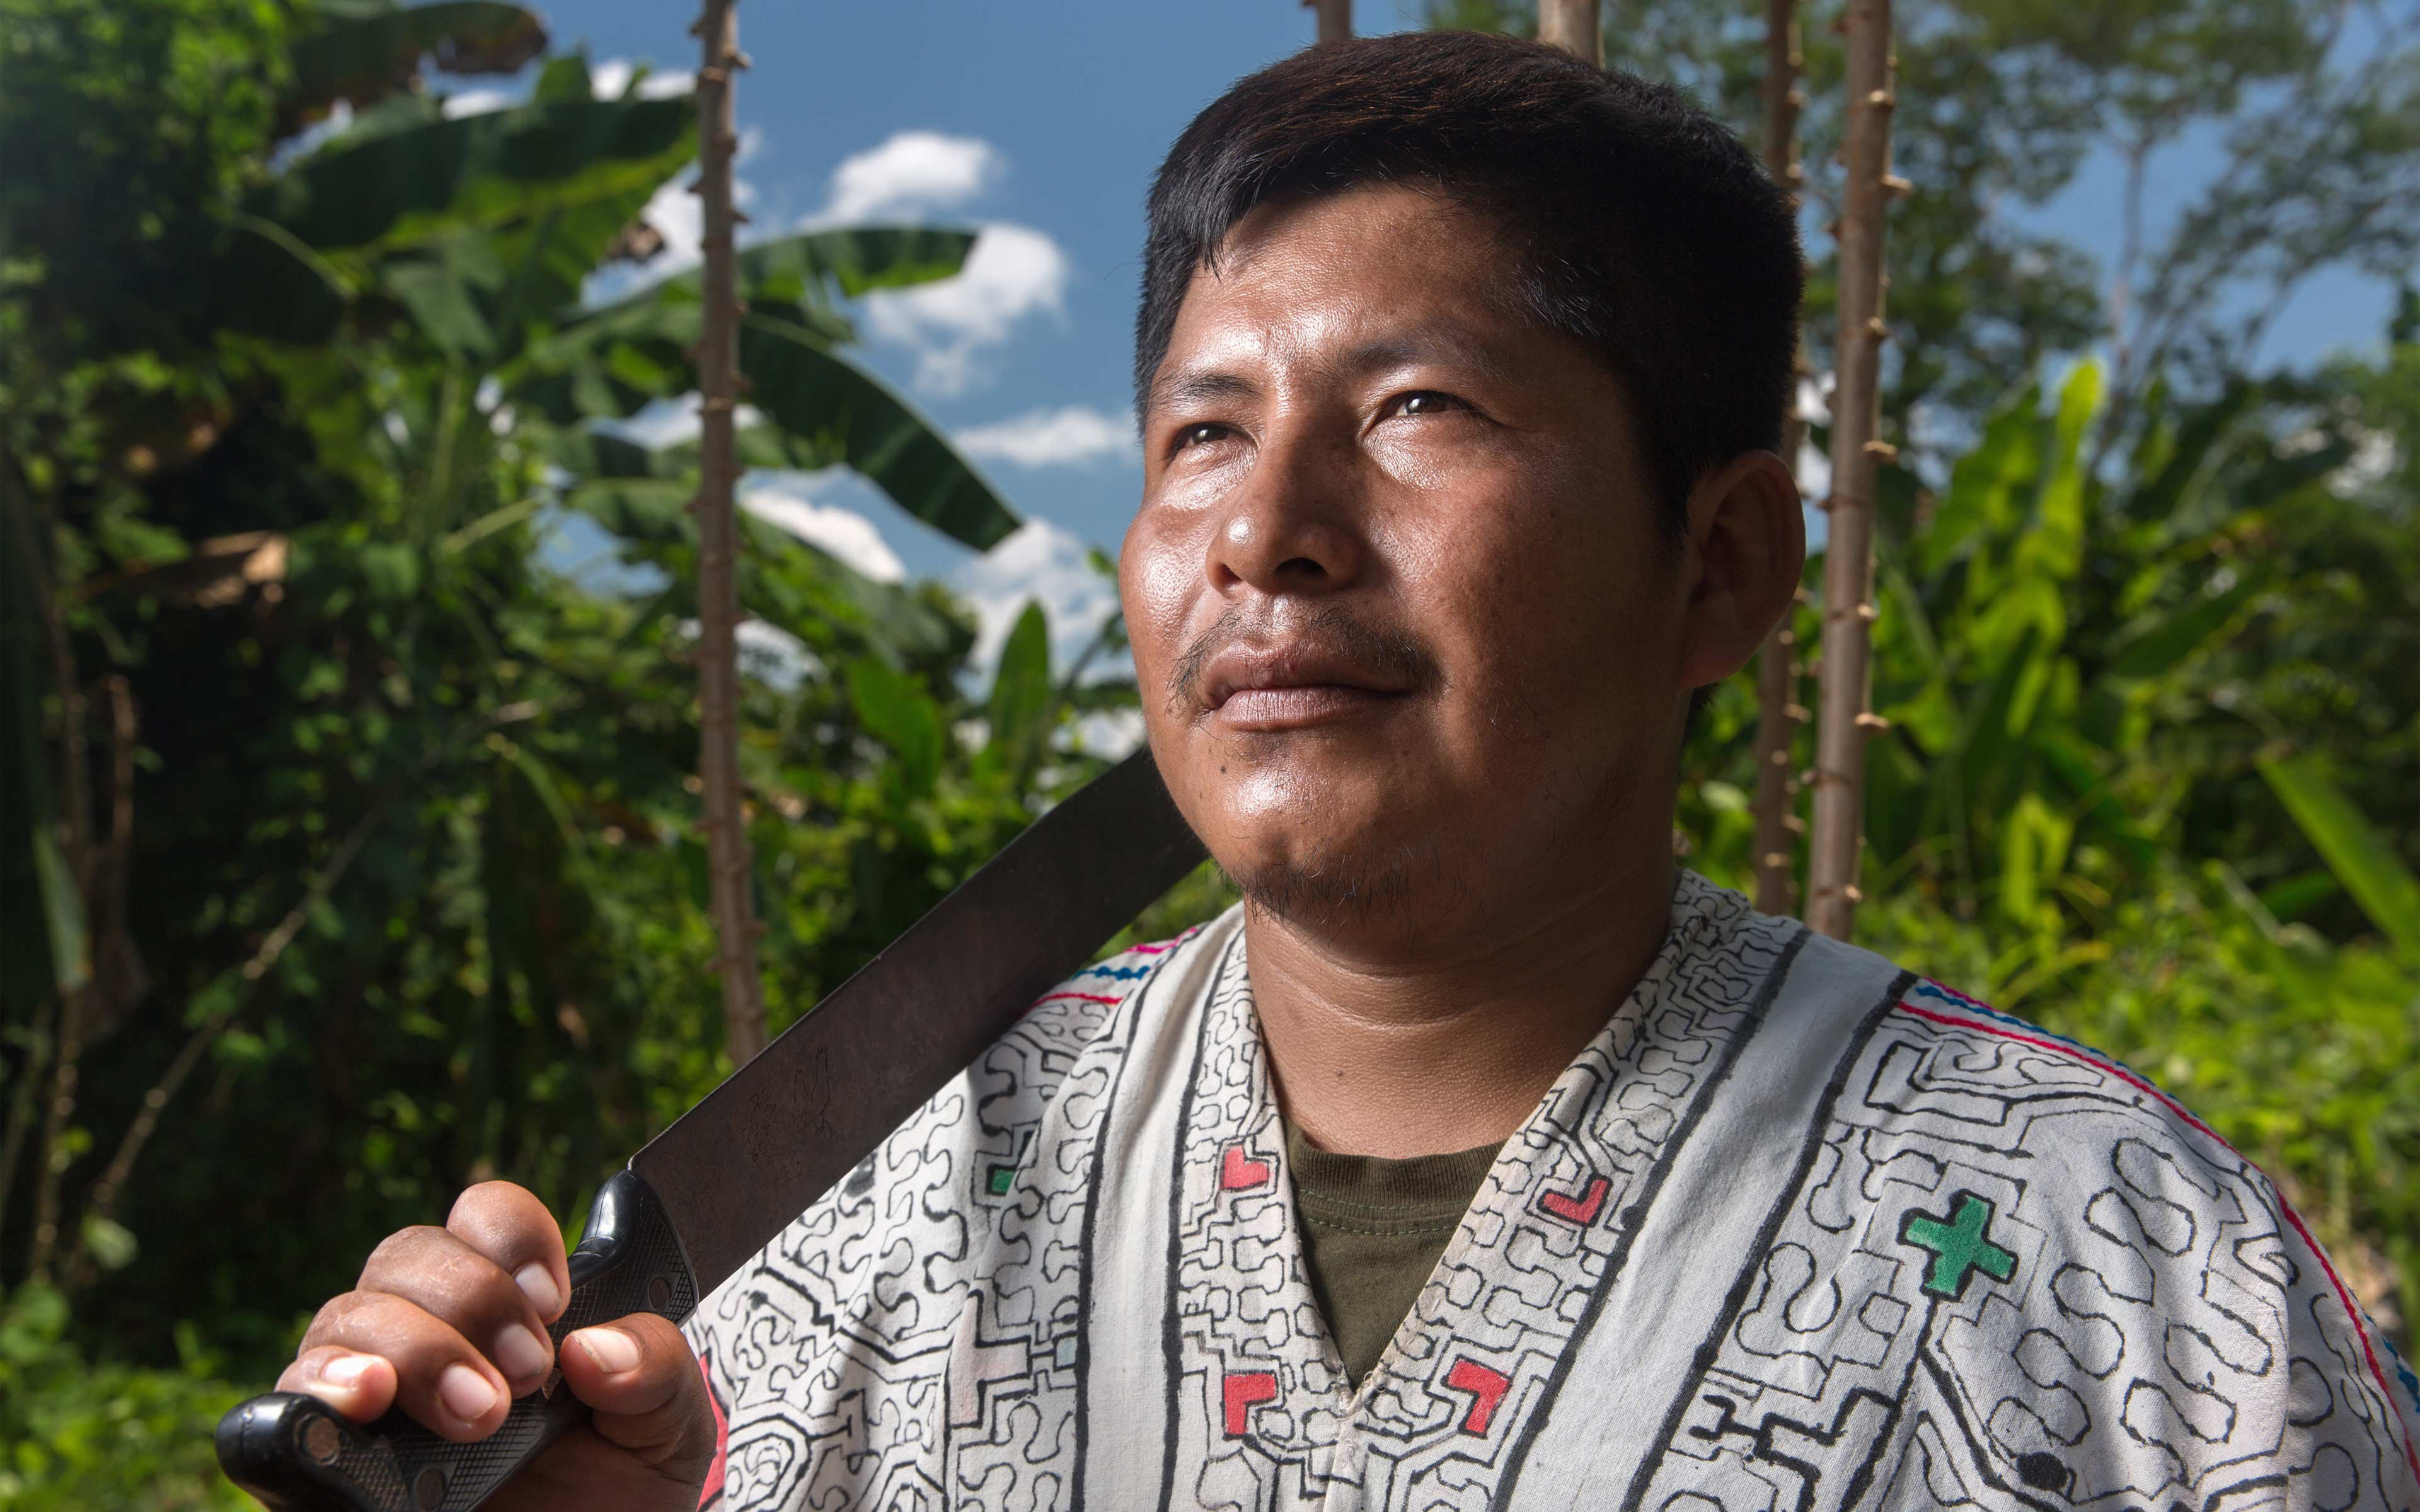 Carlos Hoyos, chief of the ethnic Shipibo village Santa Clara de Uchunya, is one of the leaders of the community that is seeking communal land title to 38,000 hectares (about 93,000 acres) of land.